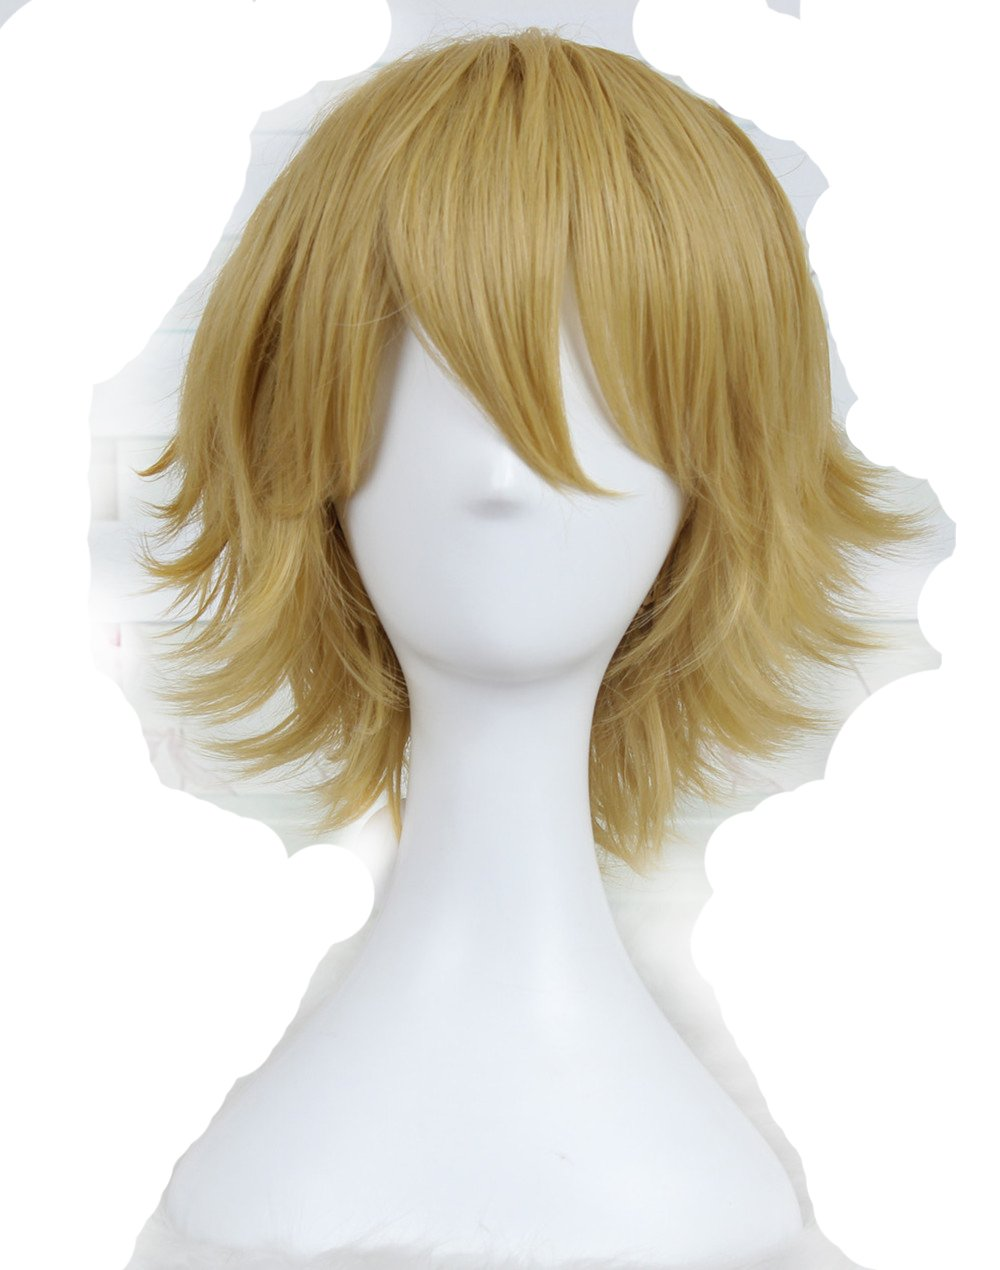 Ecvtop Wigs For Mens Death Note Male Short Hair Wig Costume Cosplay Wigs Blonde Wigs